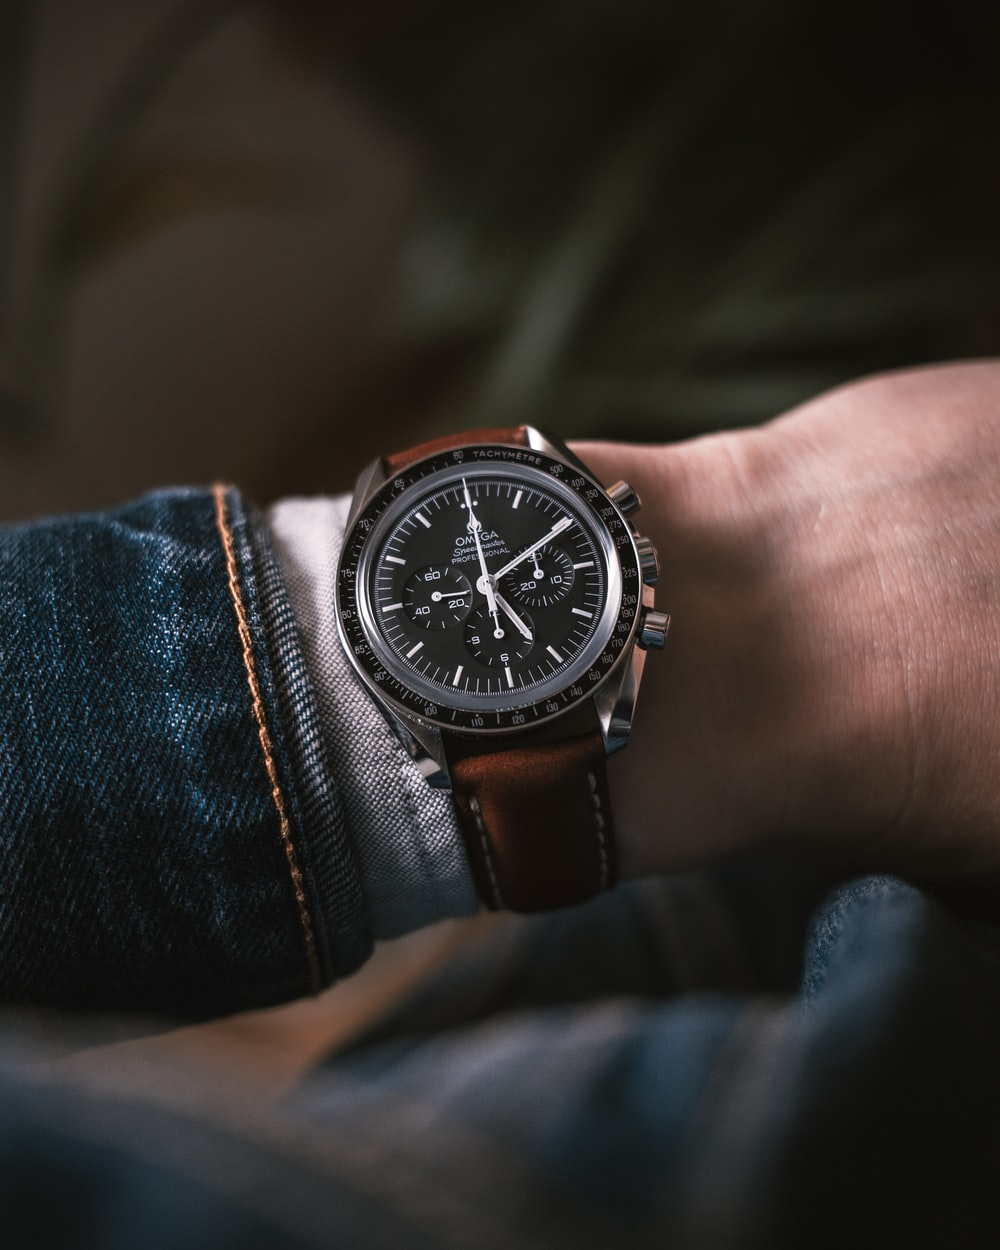 round black and silver-colored chronograph watch with brown leather band